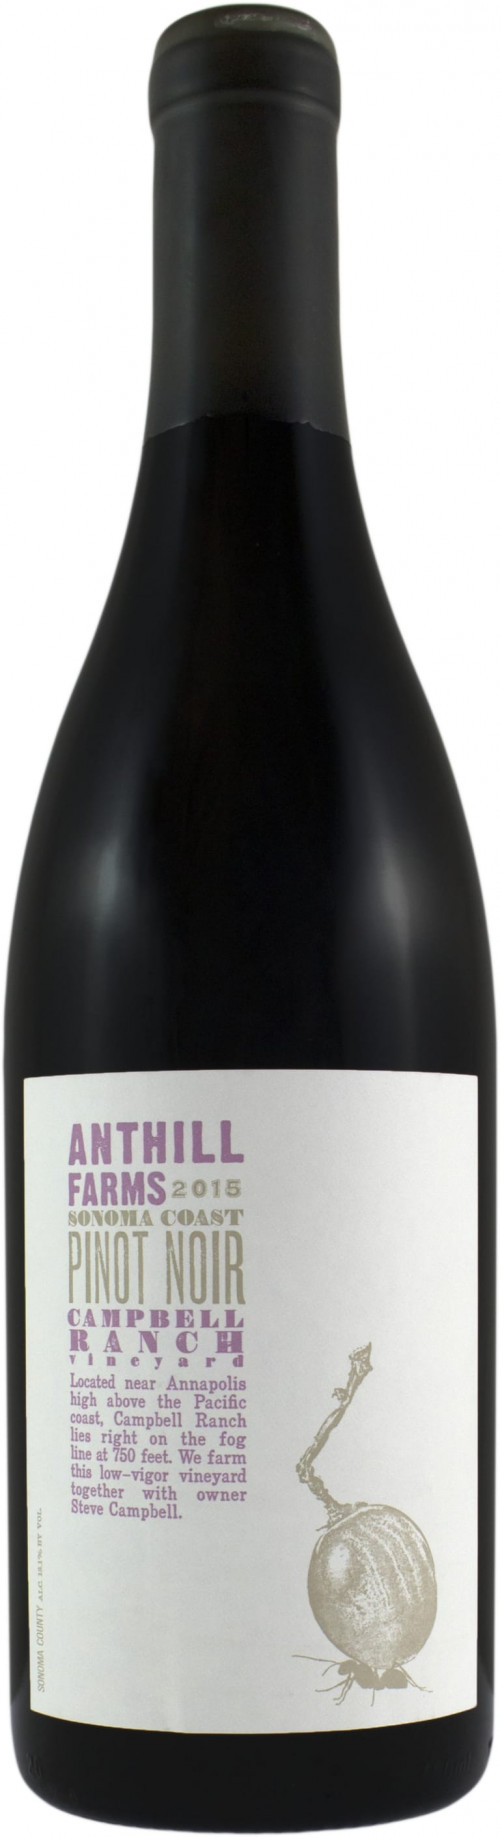 2015 Anthill Farms Campbell Ranch Pinot Noir 750ml